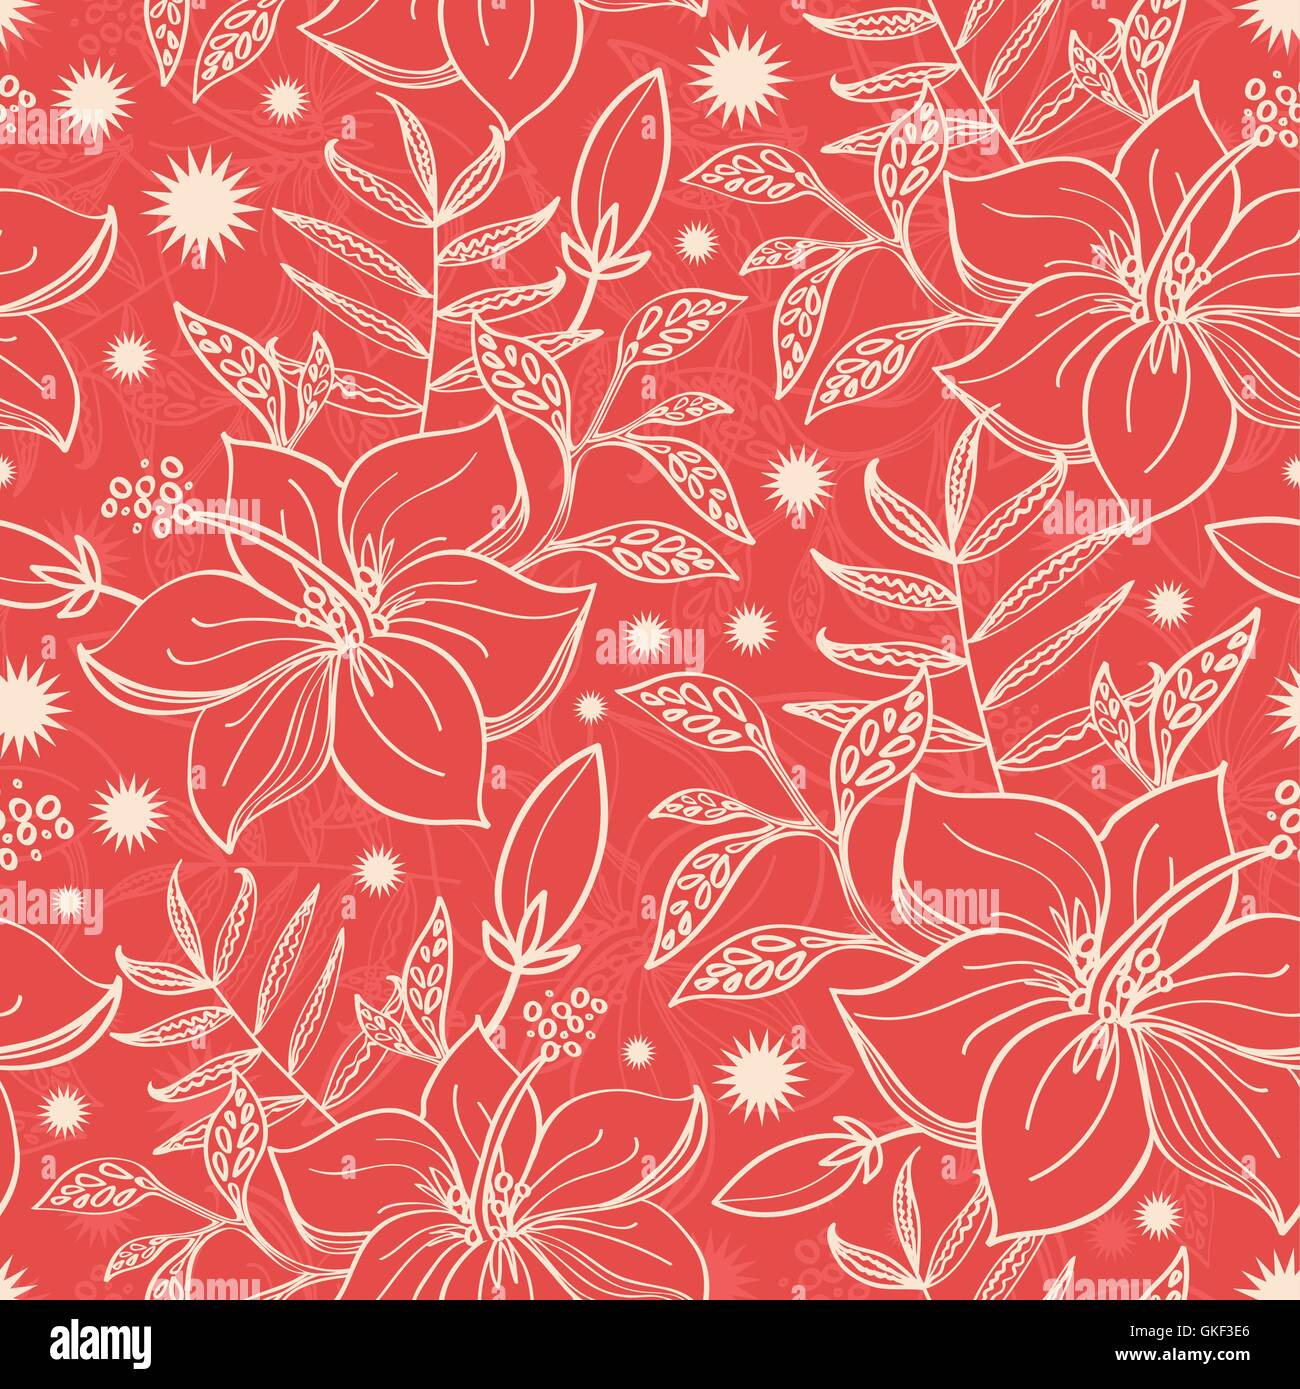 Vector red and beige tropical floral seamless pattern background - Stock Image